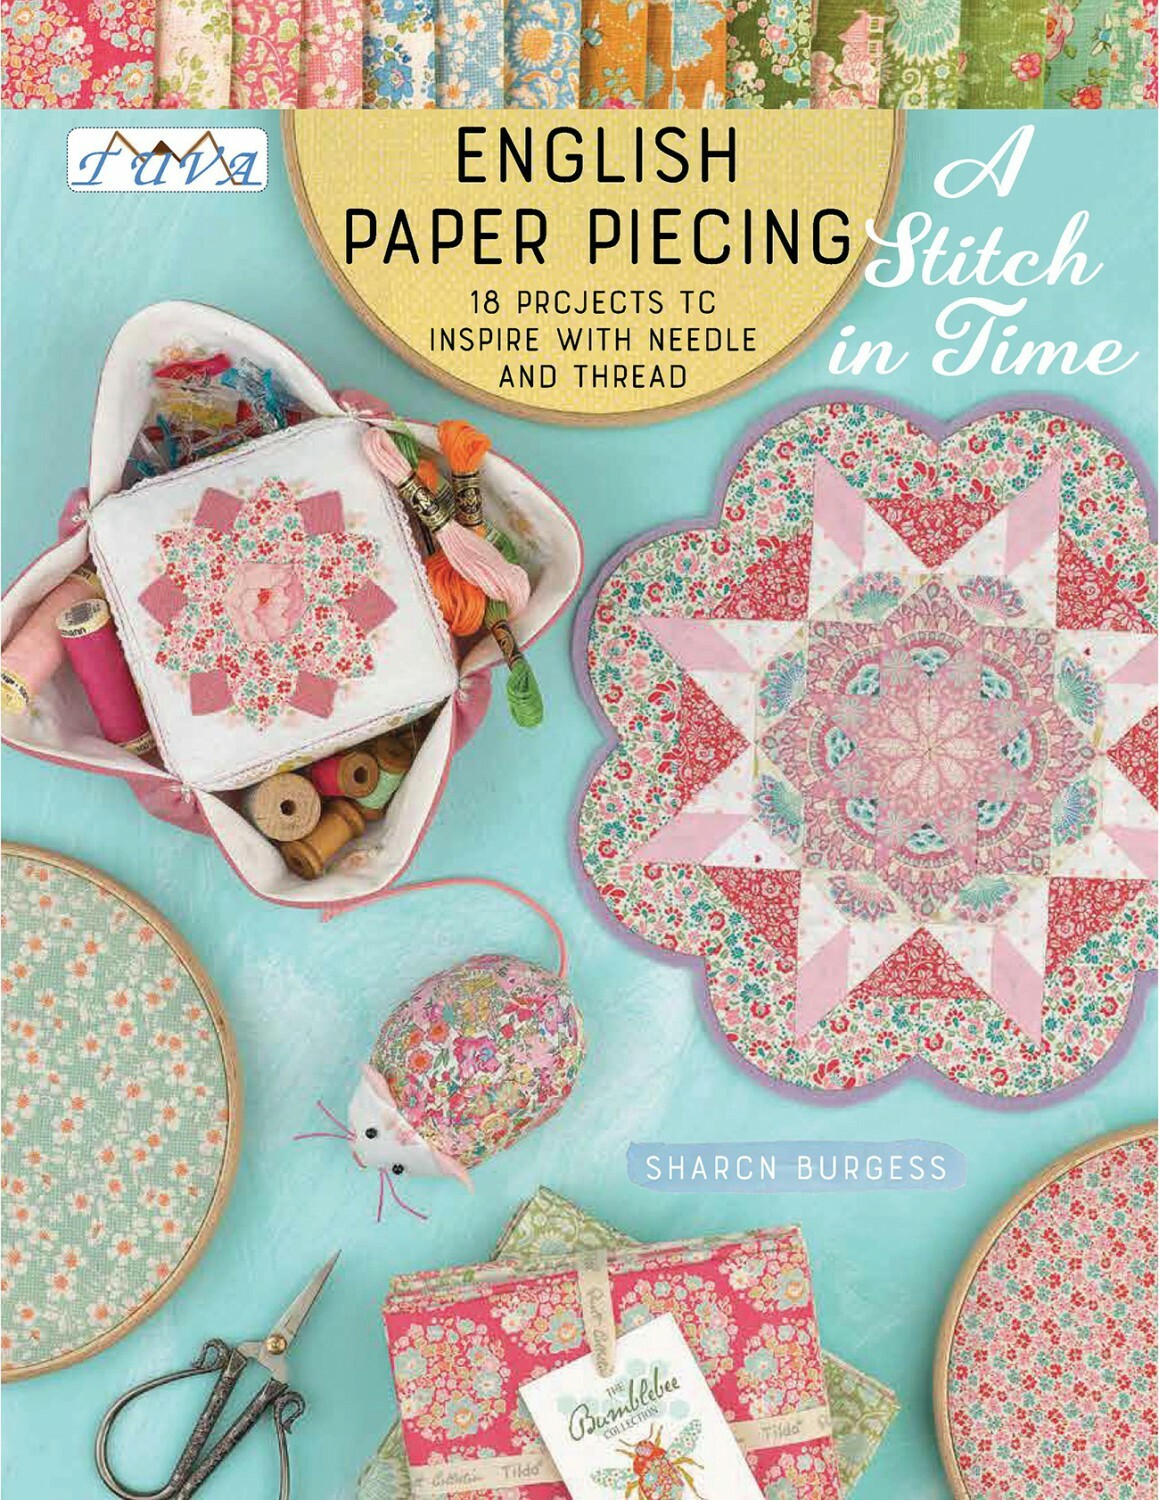 English Paper Piecing: A Stitch In Time 56553